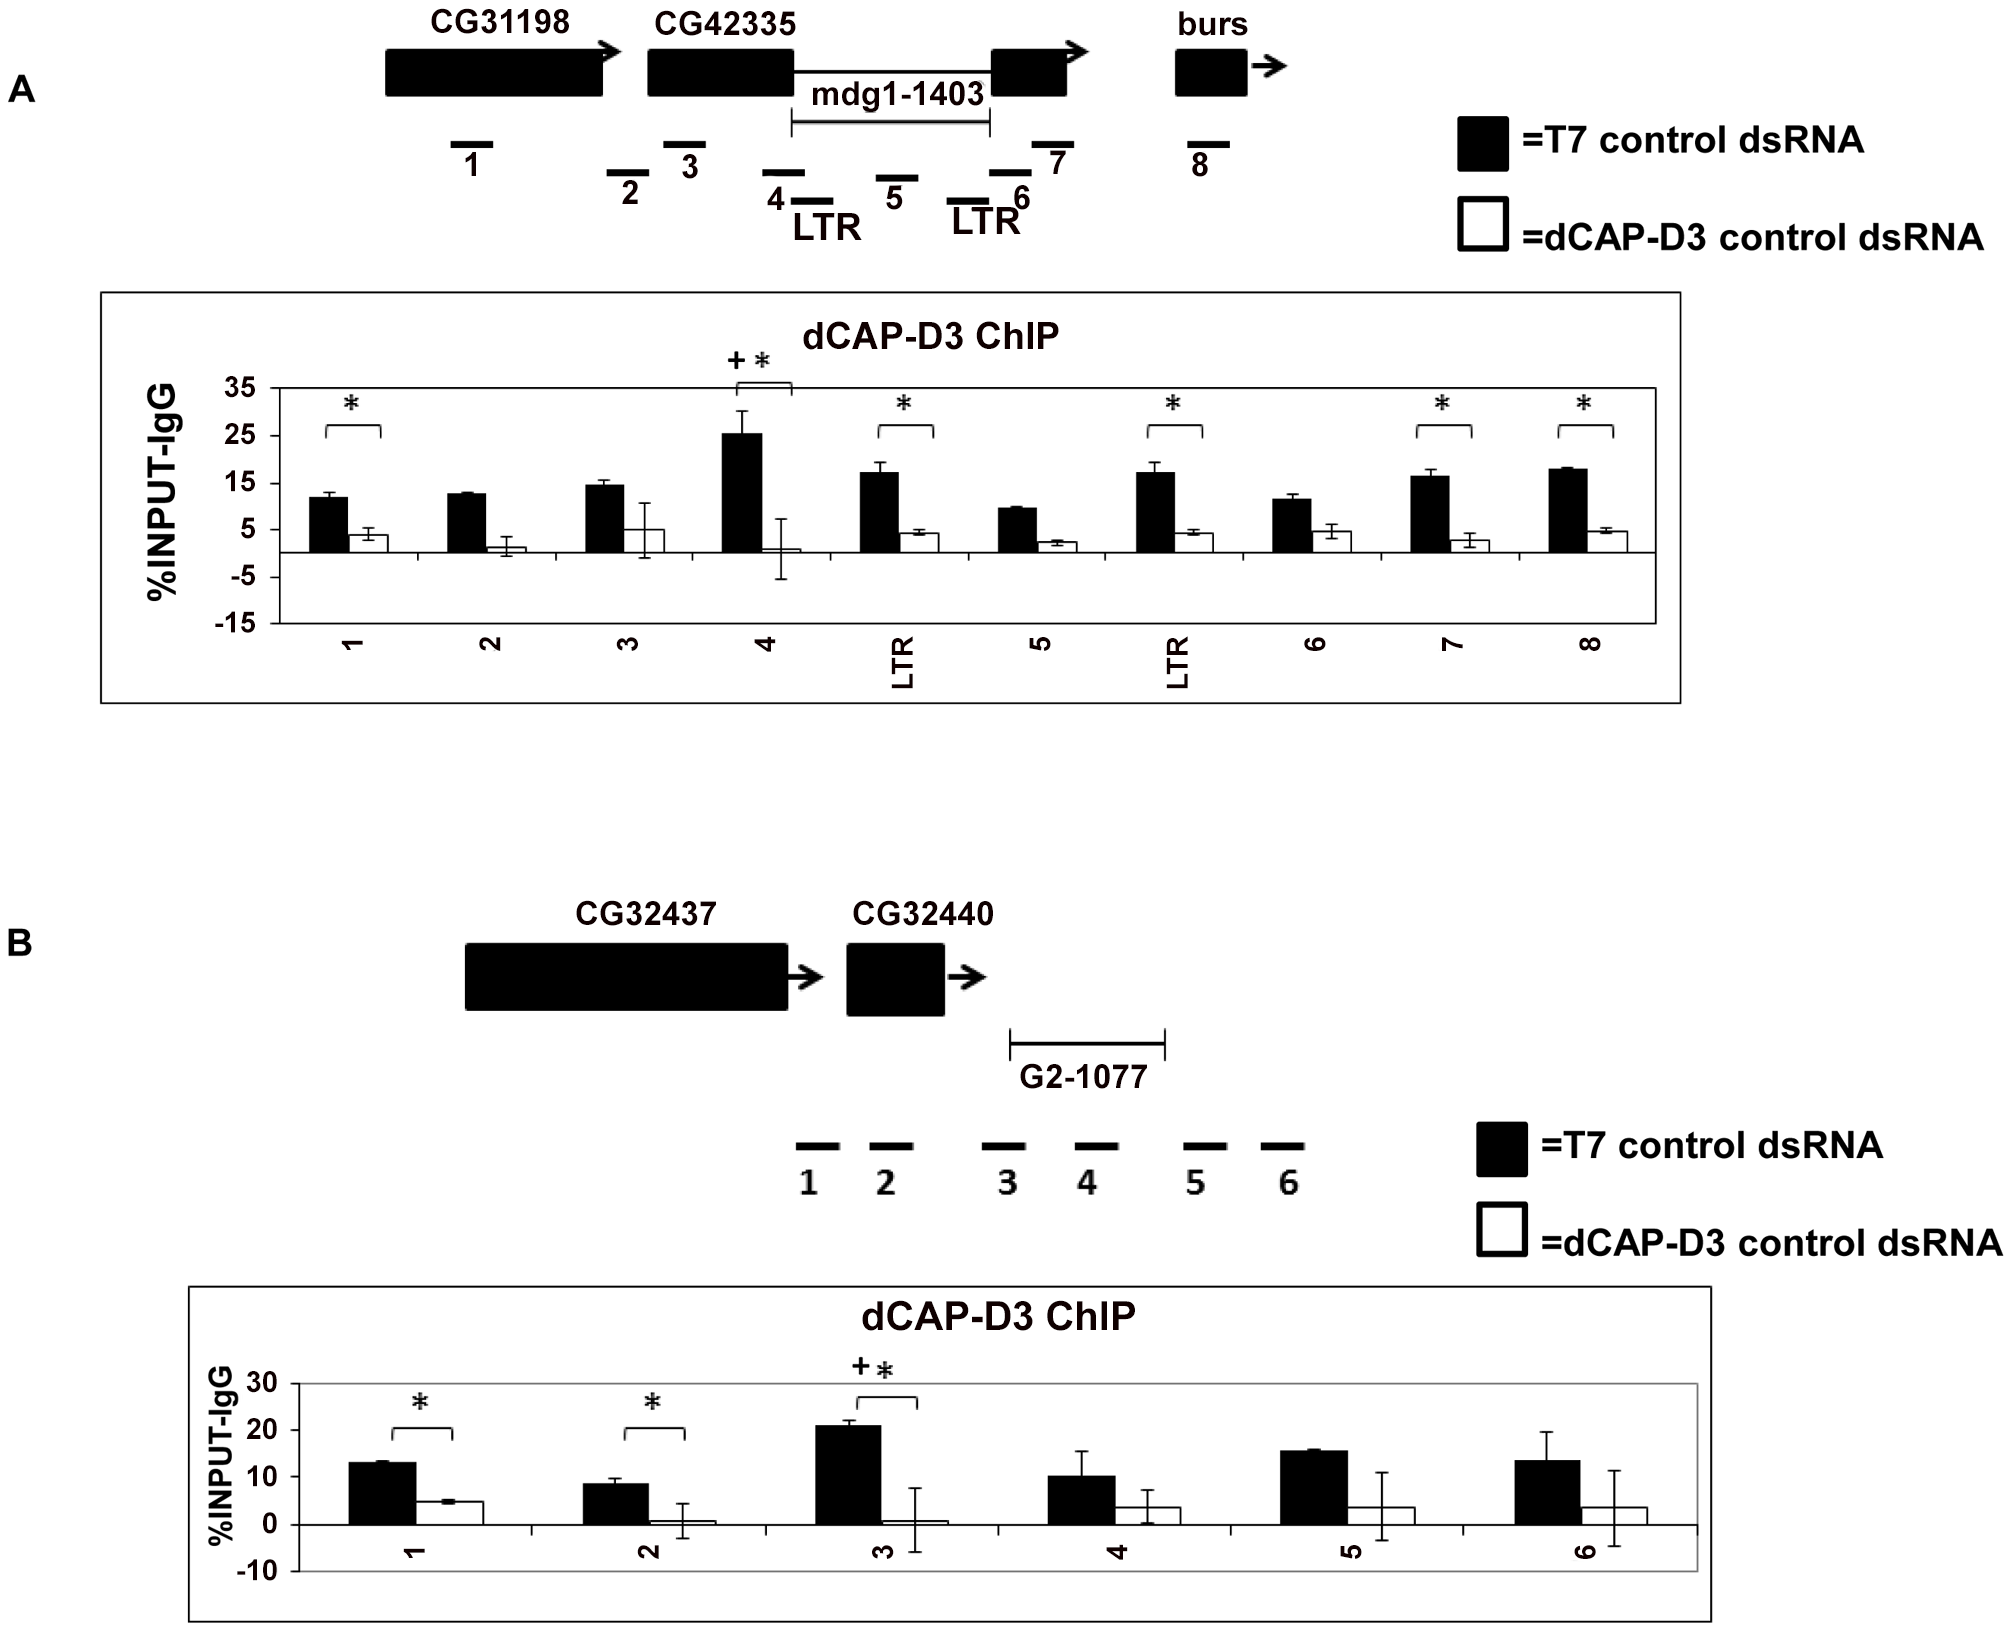 dCAP-D3 binds to loci containing retrotransposons.